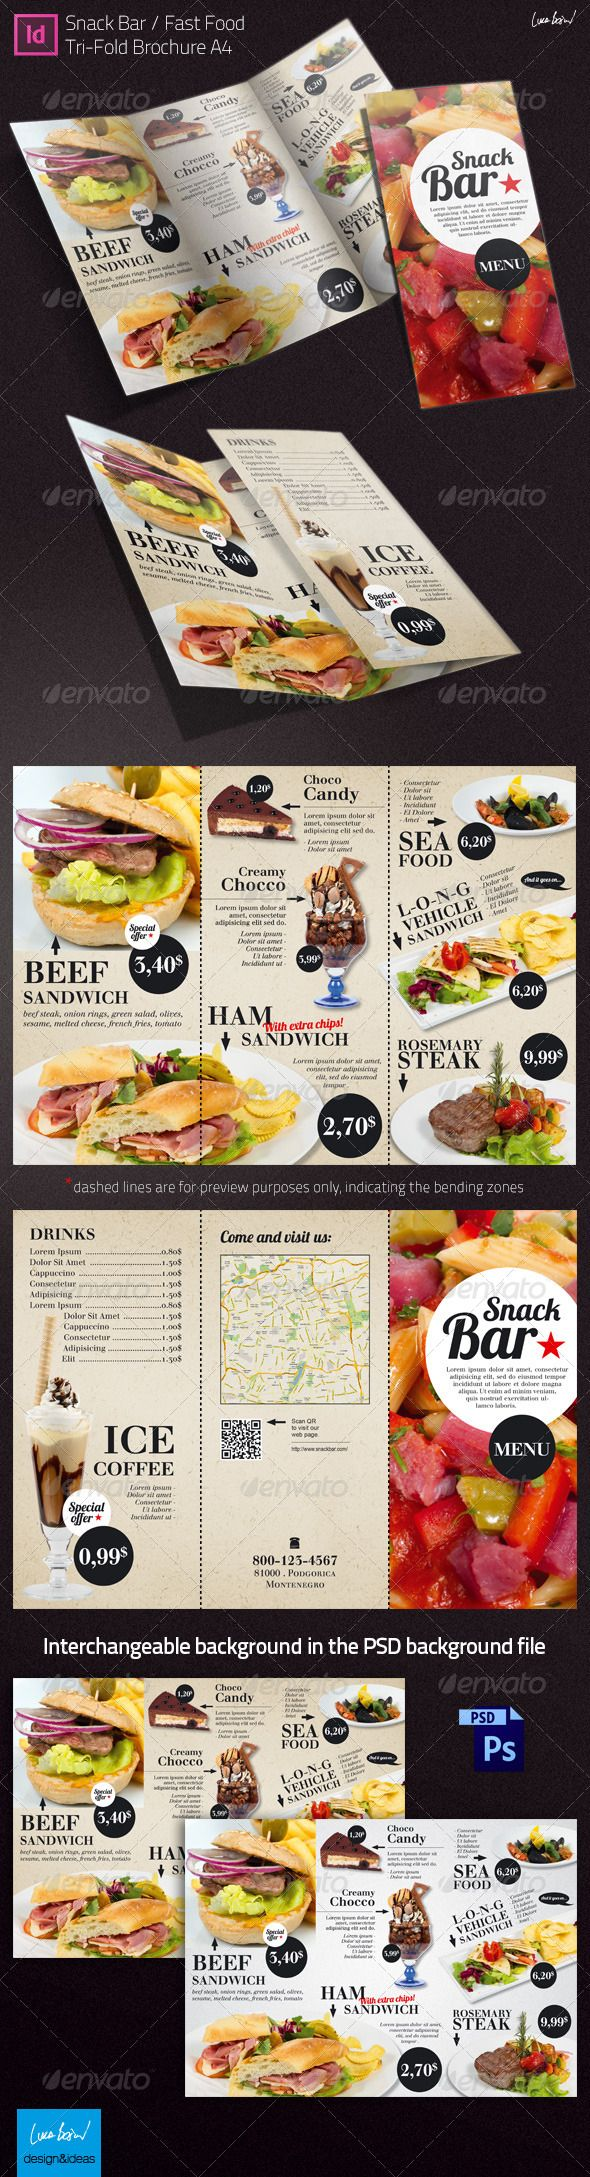 Tri-fold Brochure: Snack Bar Menu - Restaurant Flyers - love the shape over a full page image big playful text